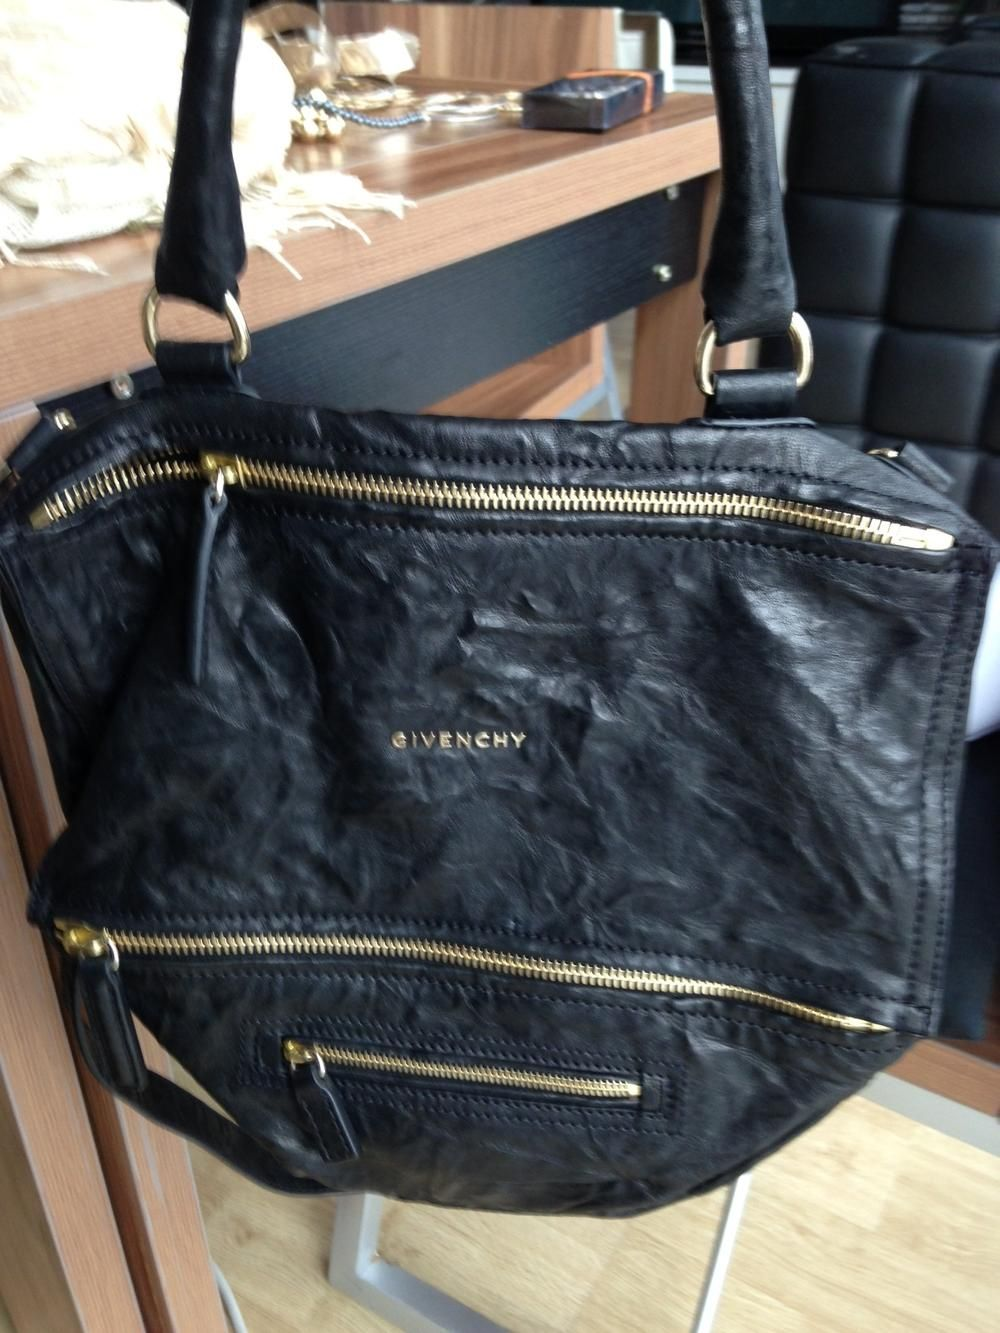 Givenchy Pandora - Page 120 - PurseForum  33c7be38b4d6a